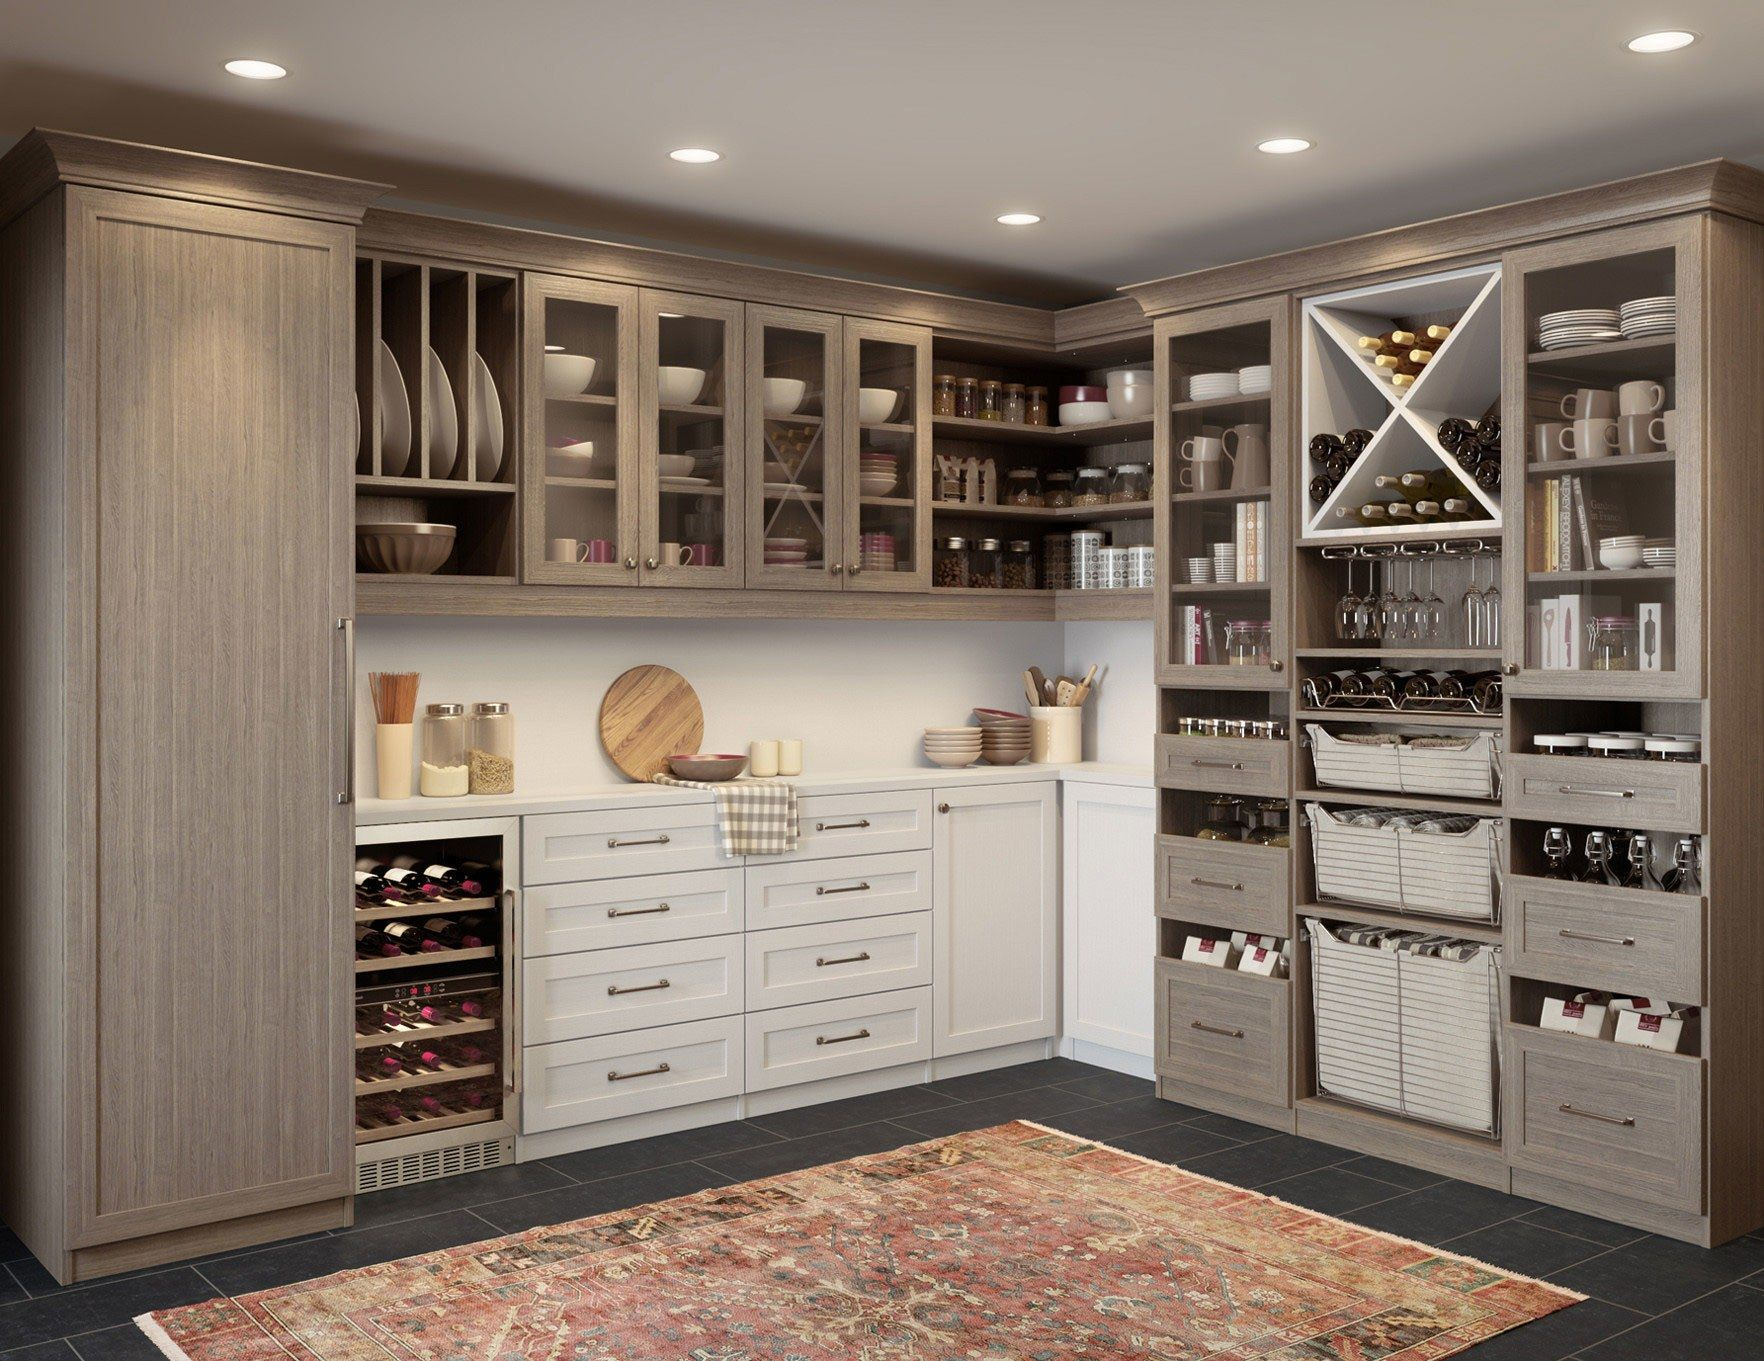 17 Convenient Ready-Made Kitchens for an Easy Home Renovation